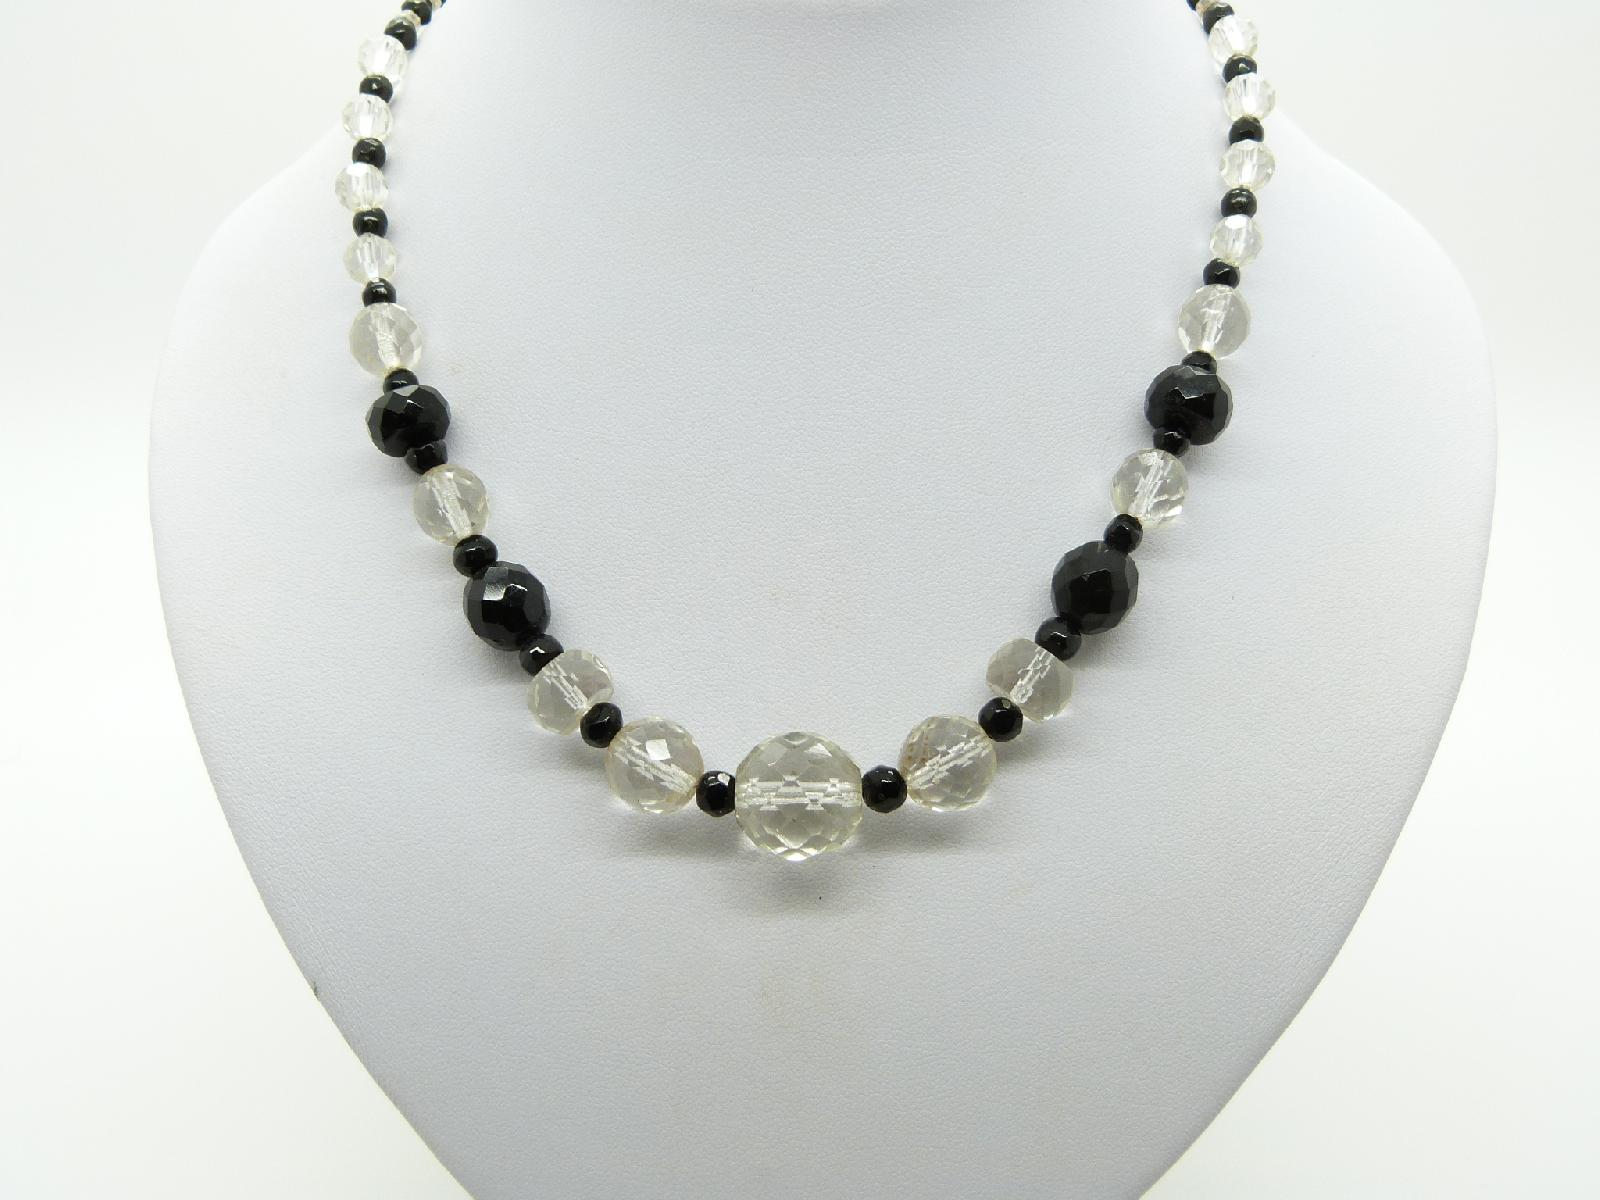 Vintage 30s Art Deco Monochrome Black and White Crystal Glass Bead Necklace